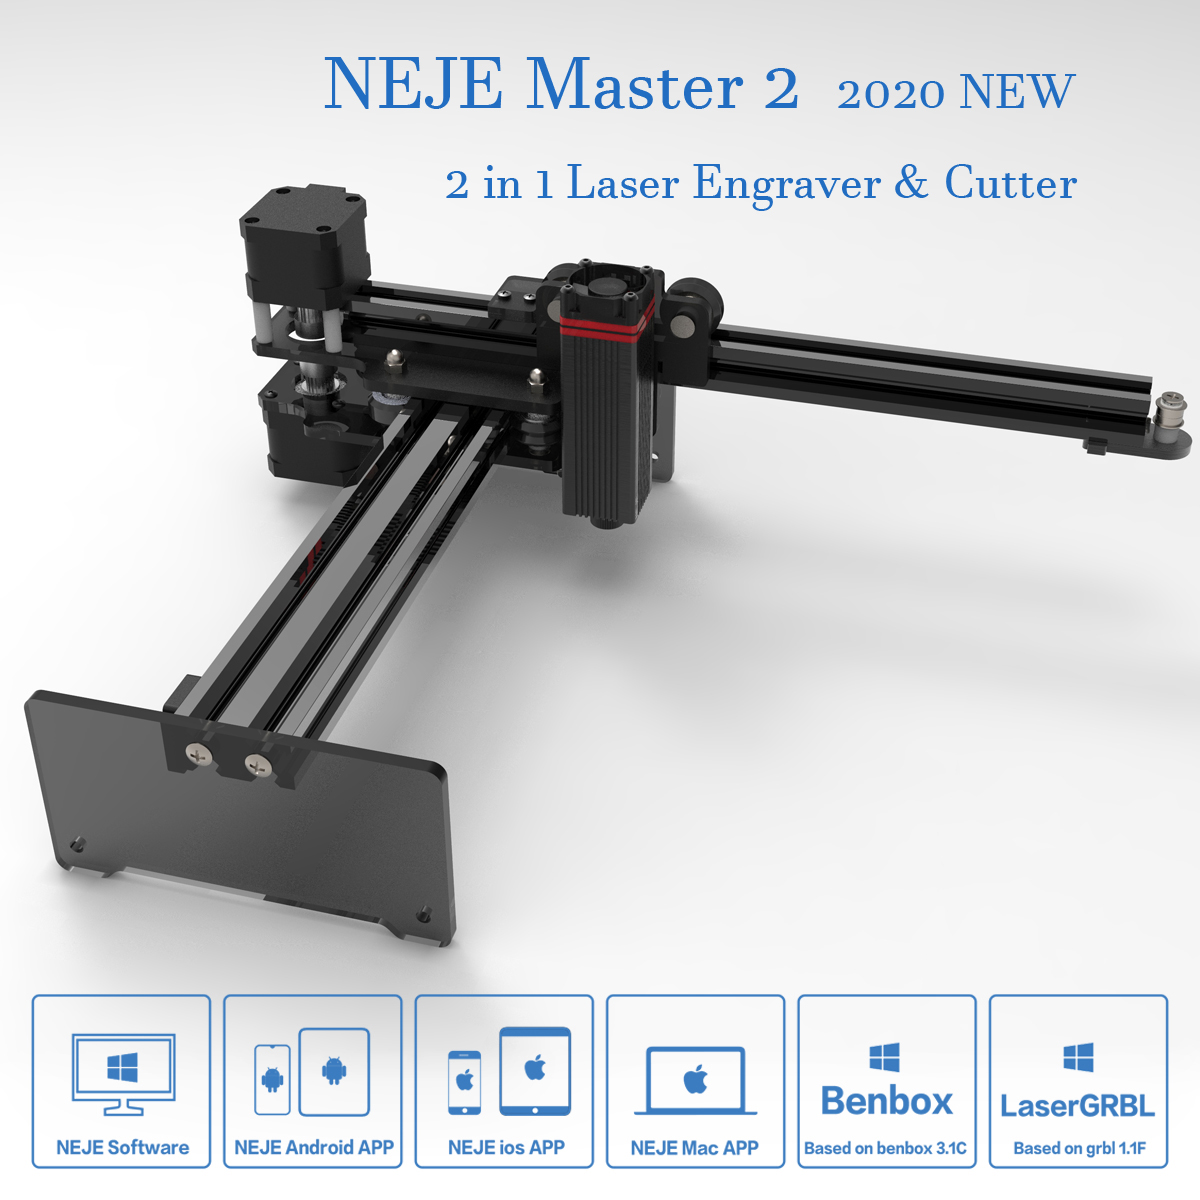 Review of ORTUR and Neje Master 2 Laser engraving machines